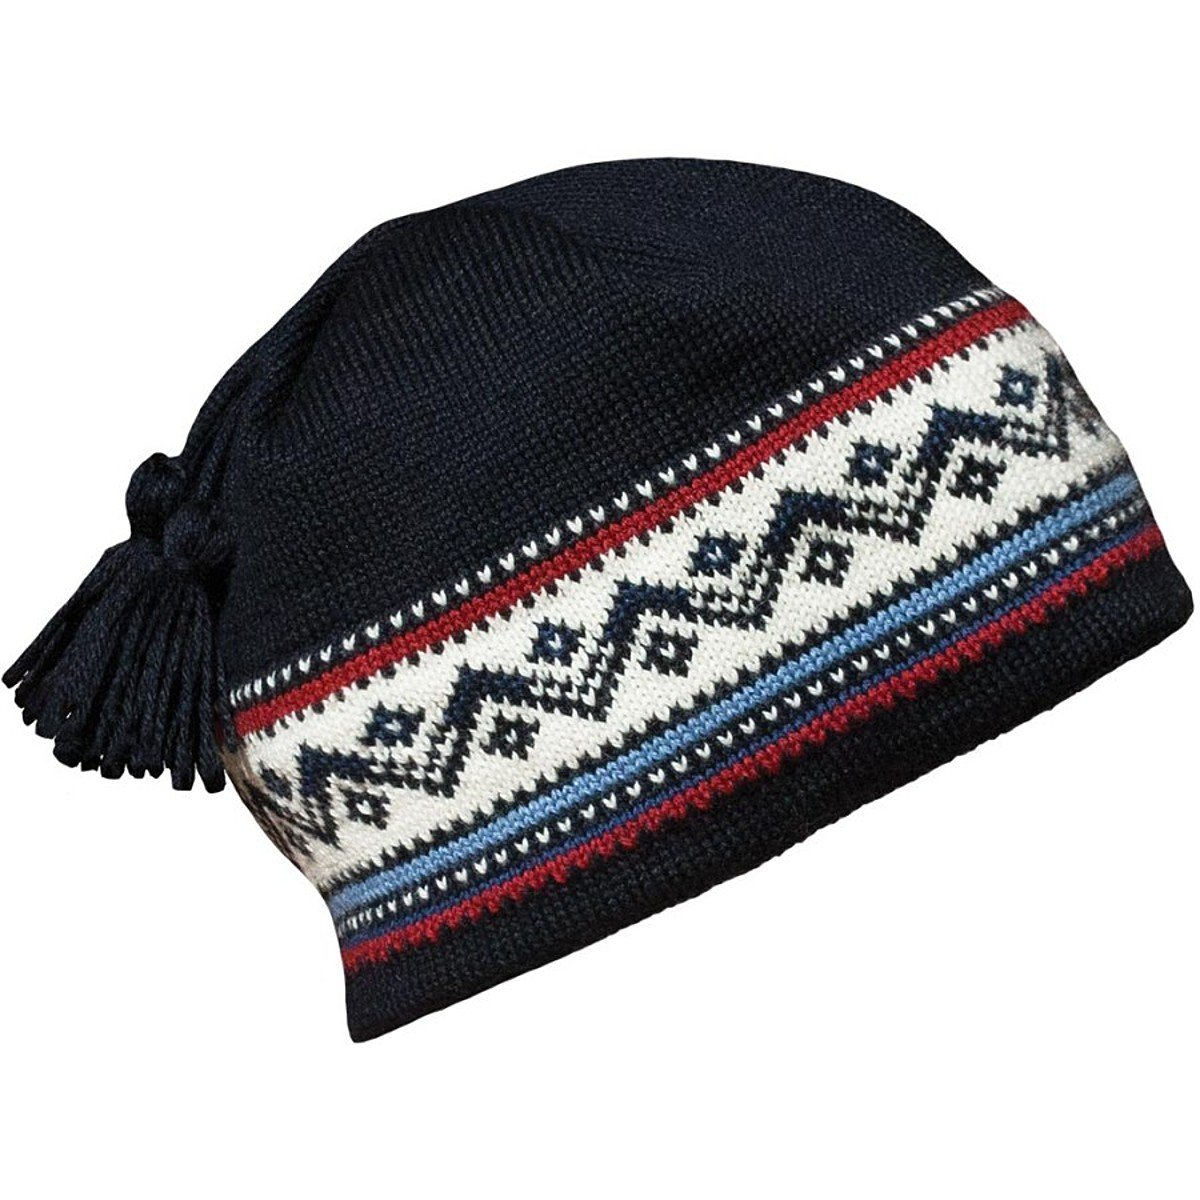 88dcd0052 Dale of Norway Vail Hat, Blue, One Size